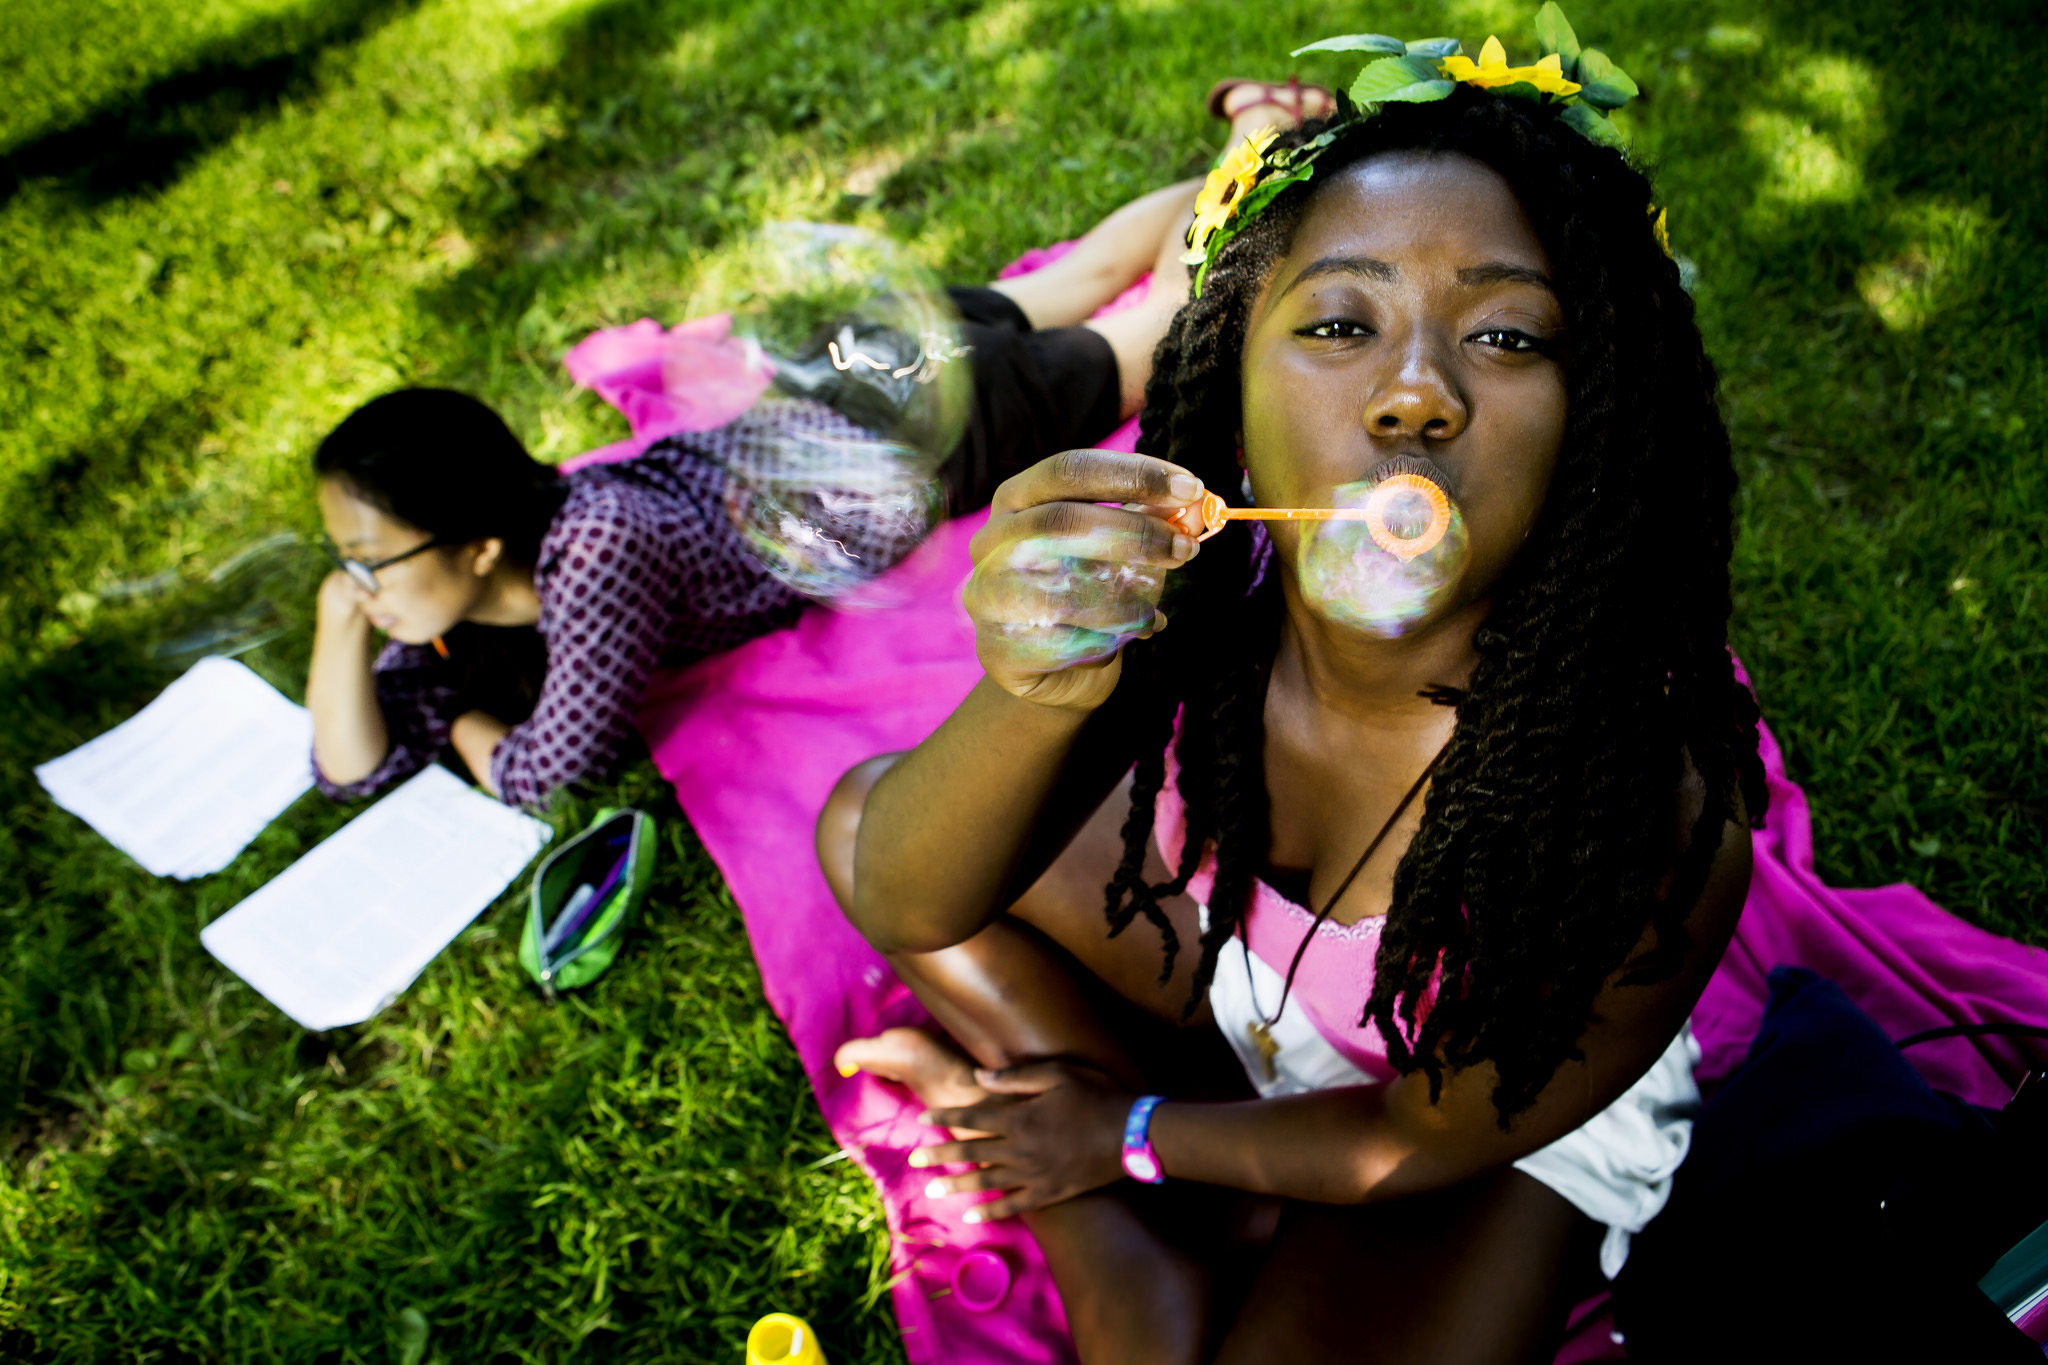 A photograph of a student blowing bubbles.